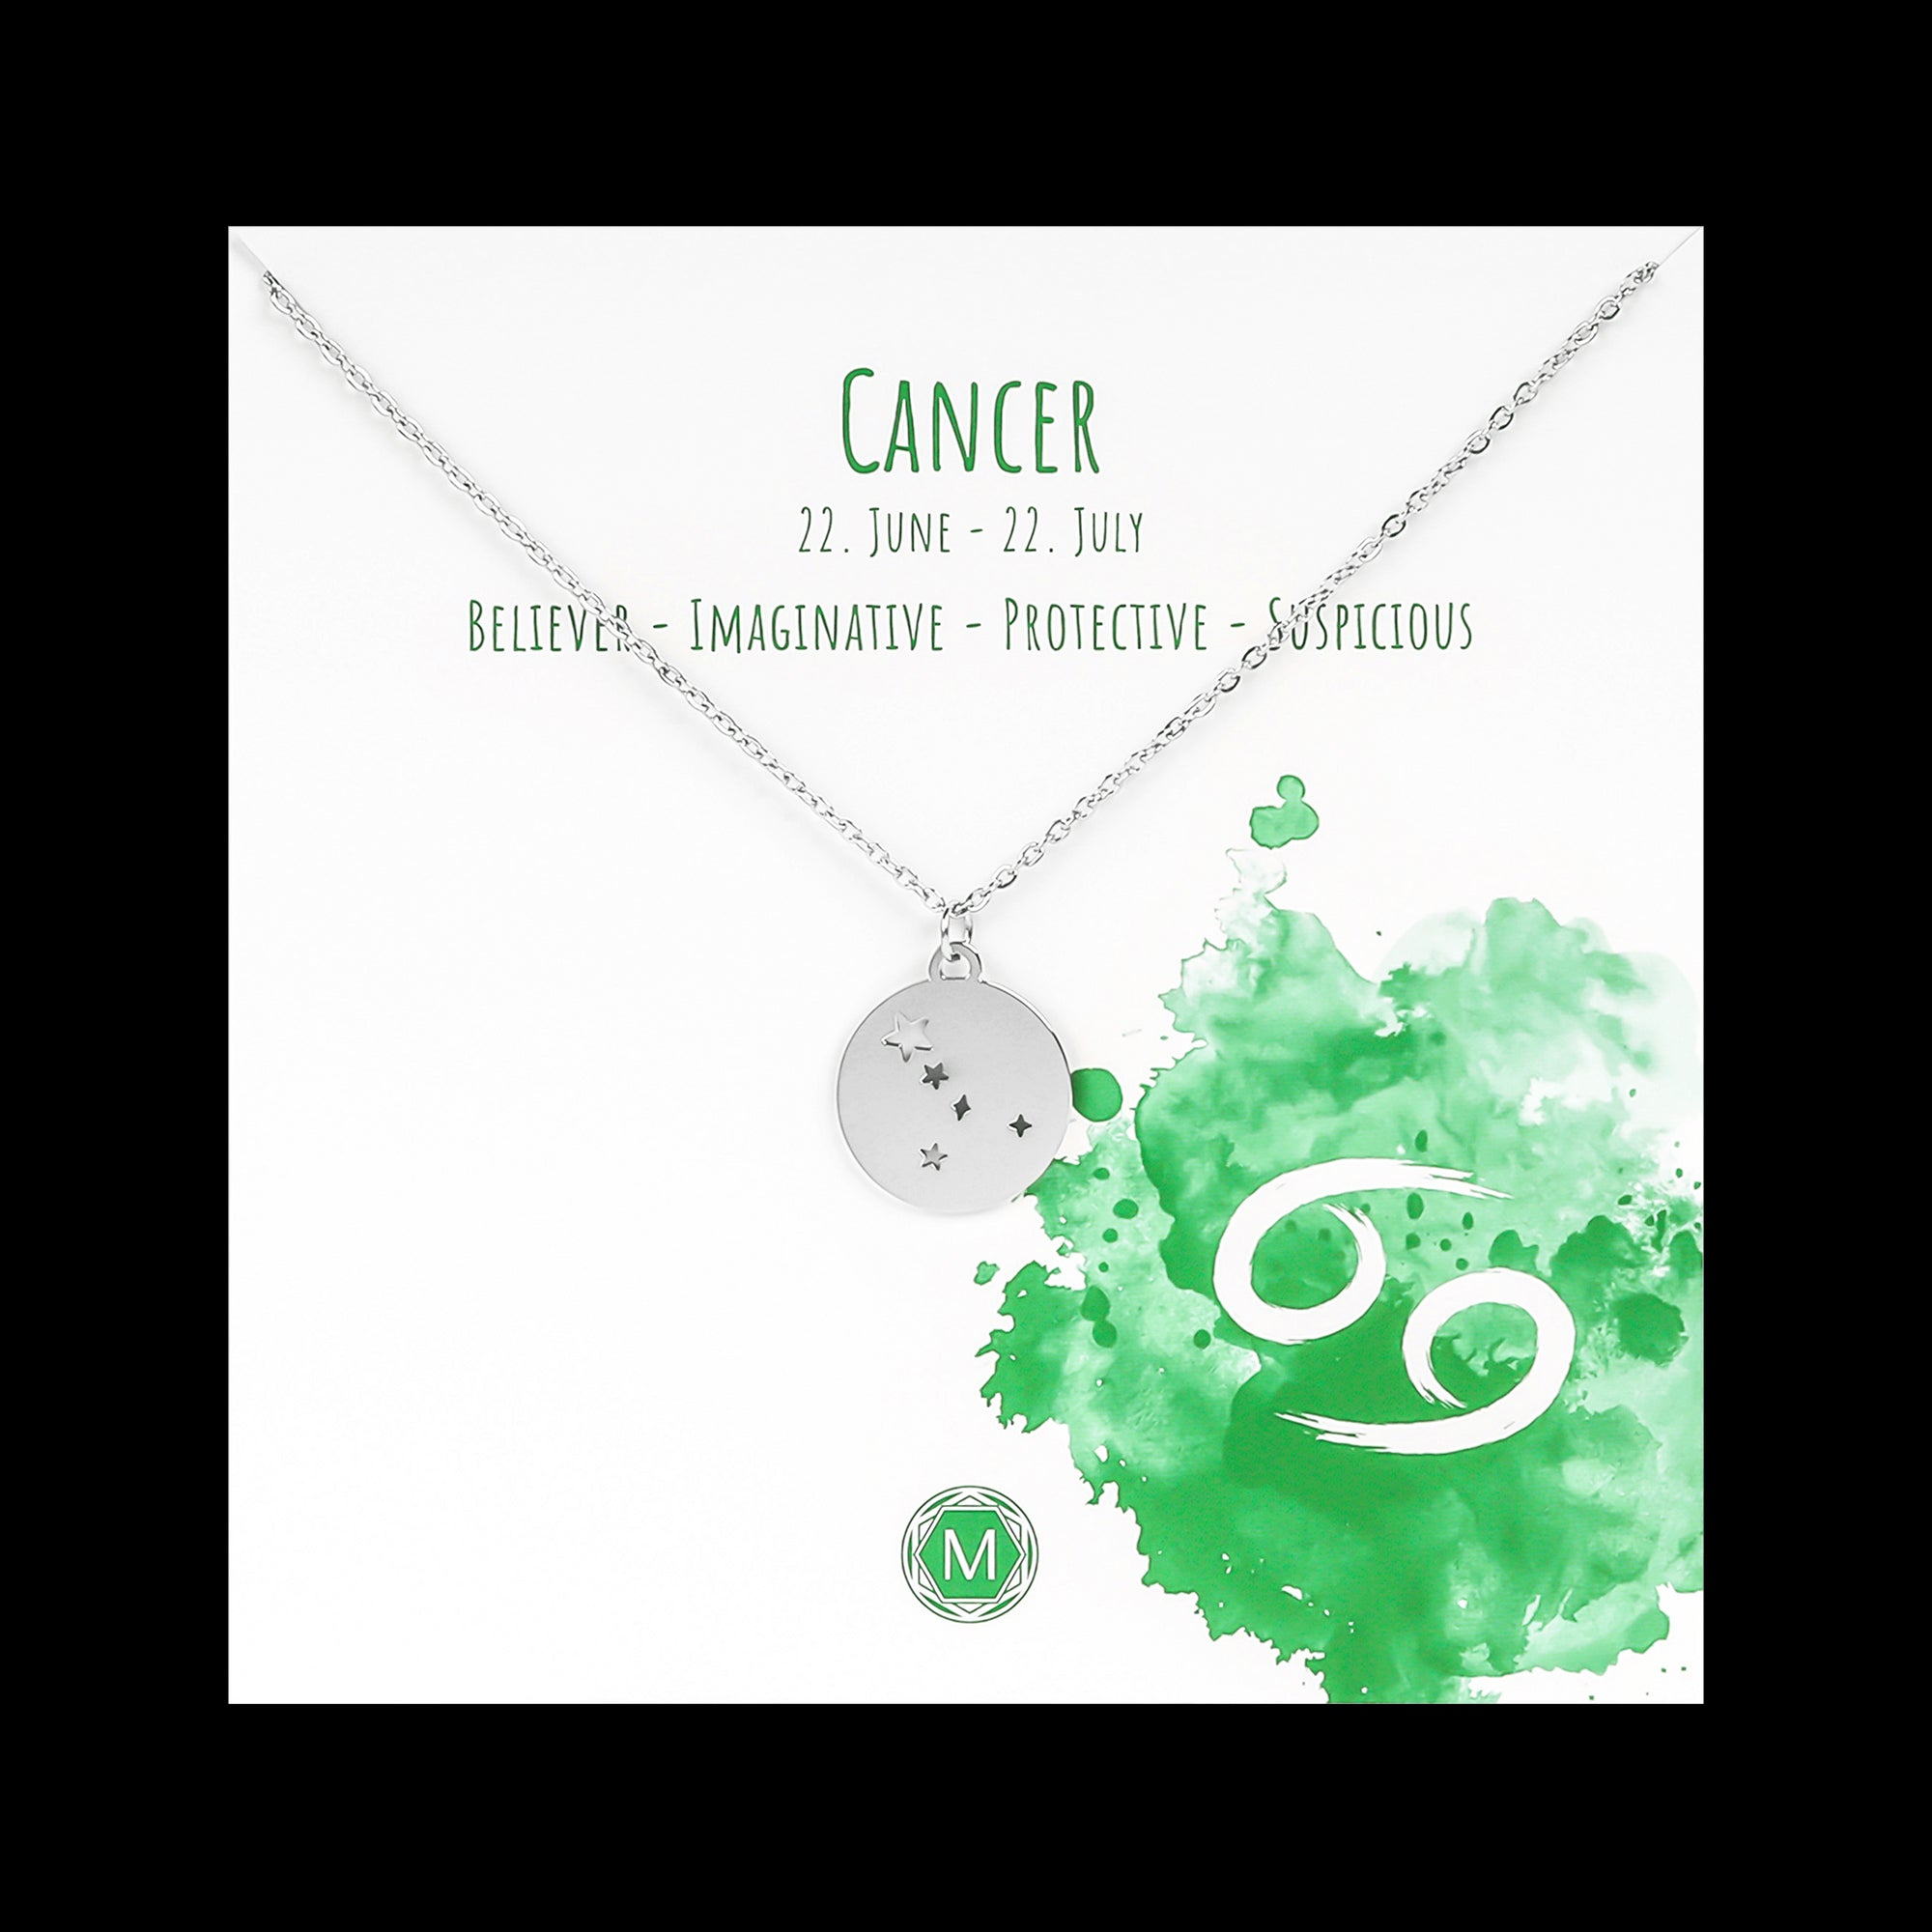 Cancer / Cancero Collana